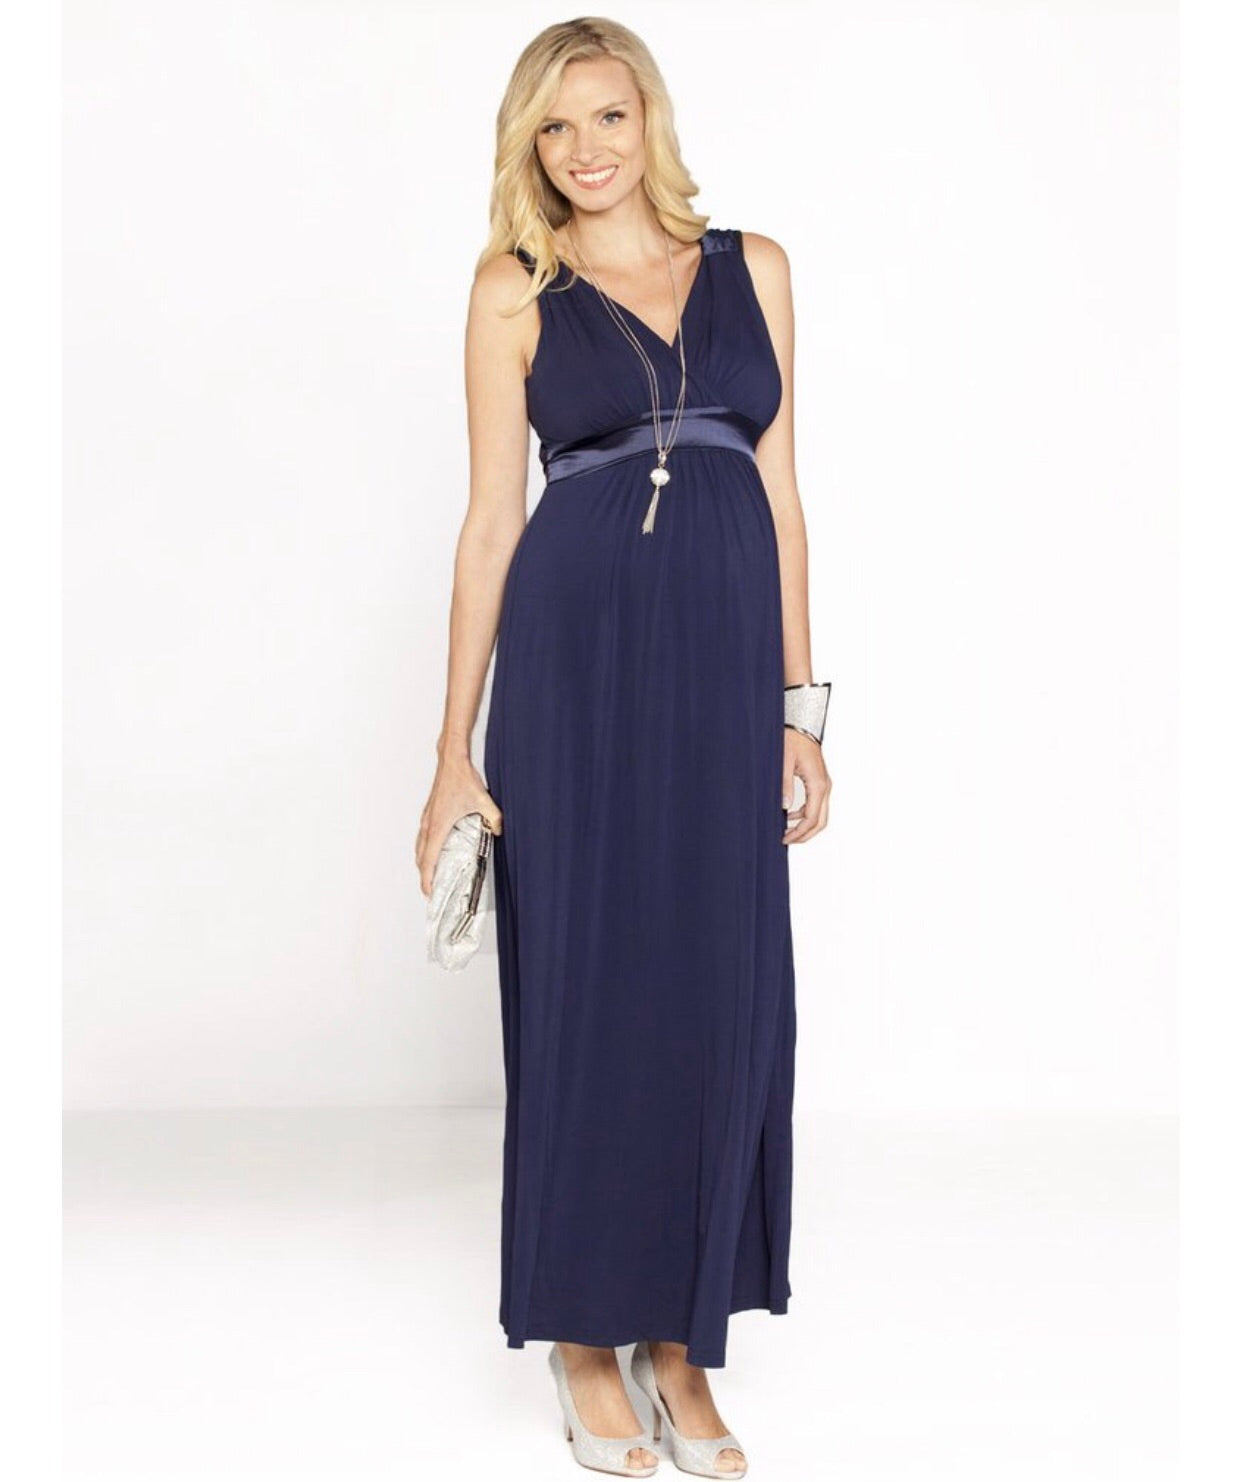 Angel Maternity 'Sue' Maternity and Nursing Formal Dress - Navy